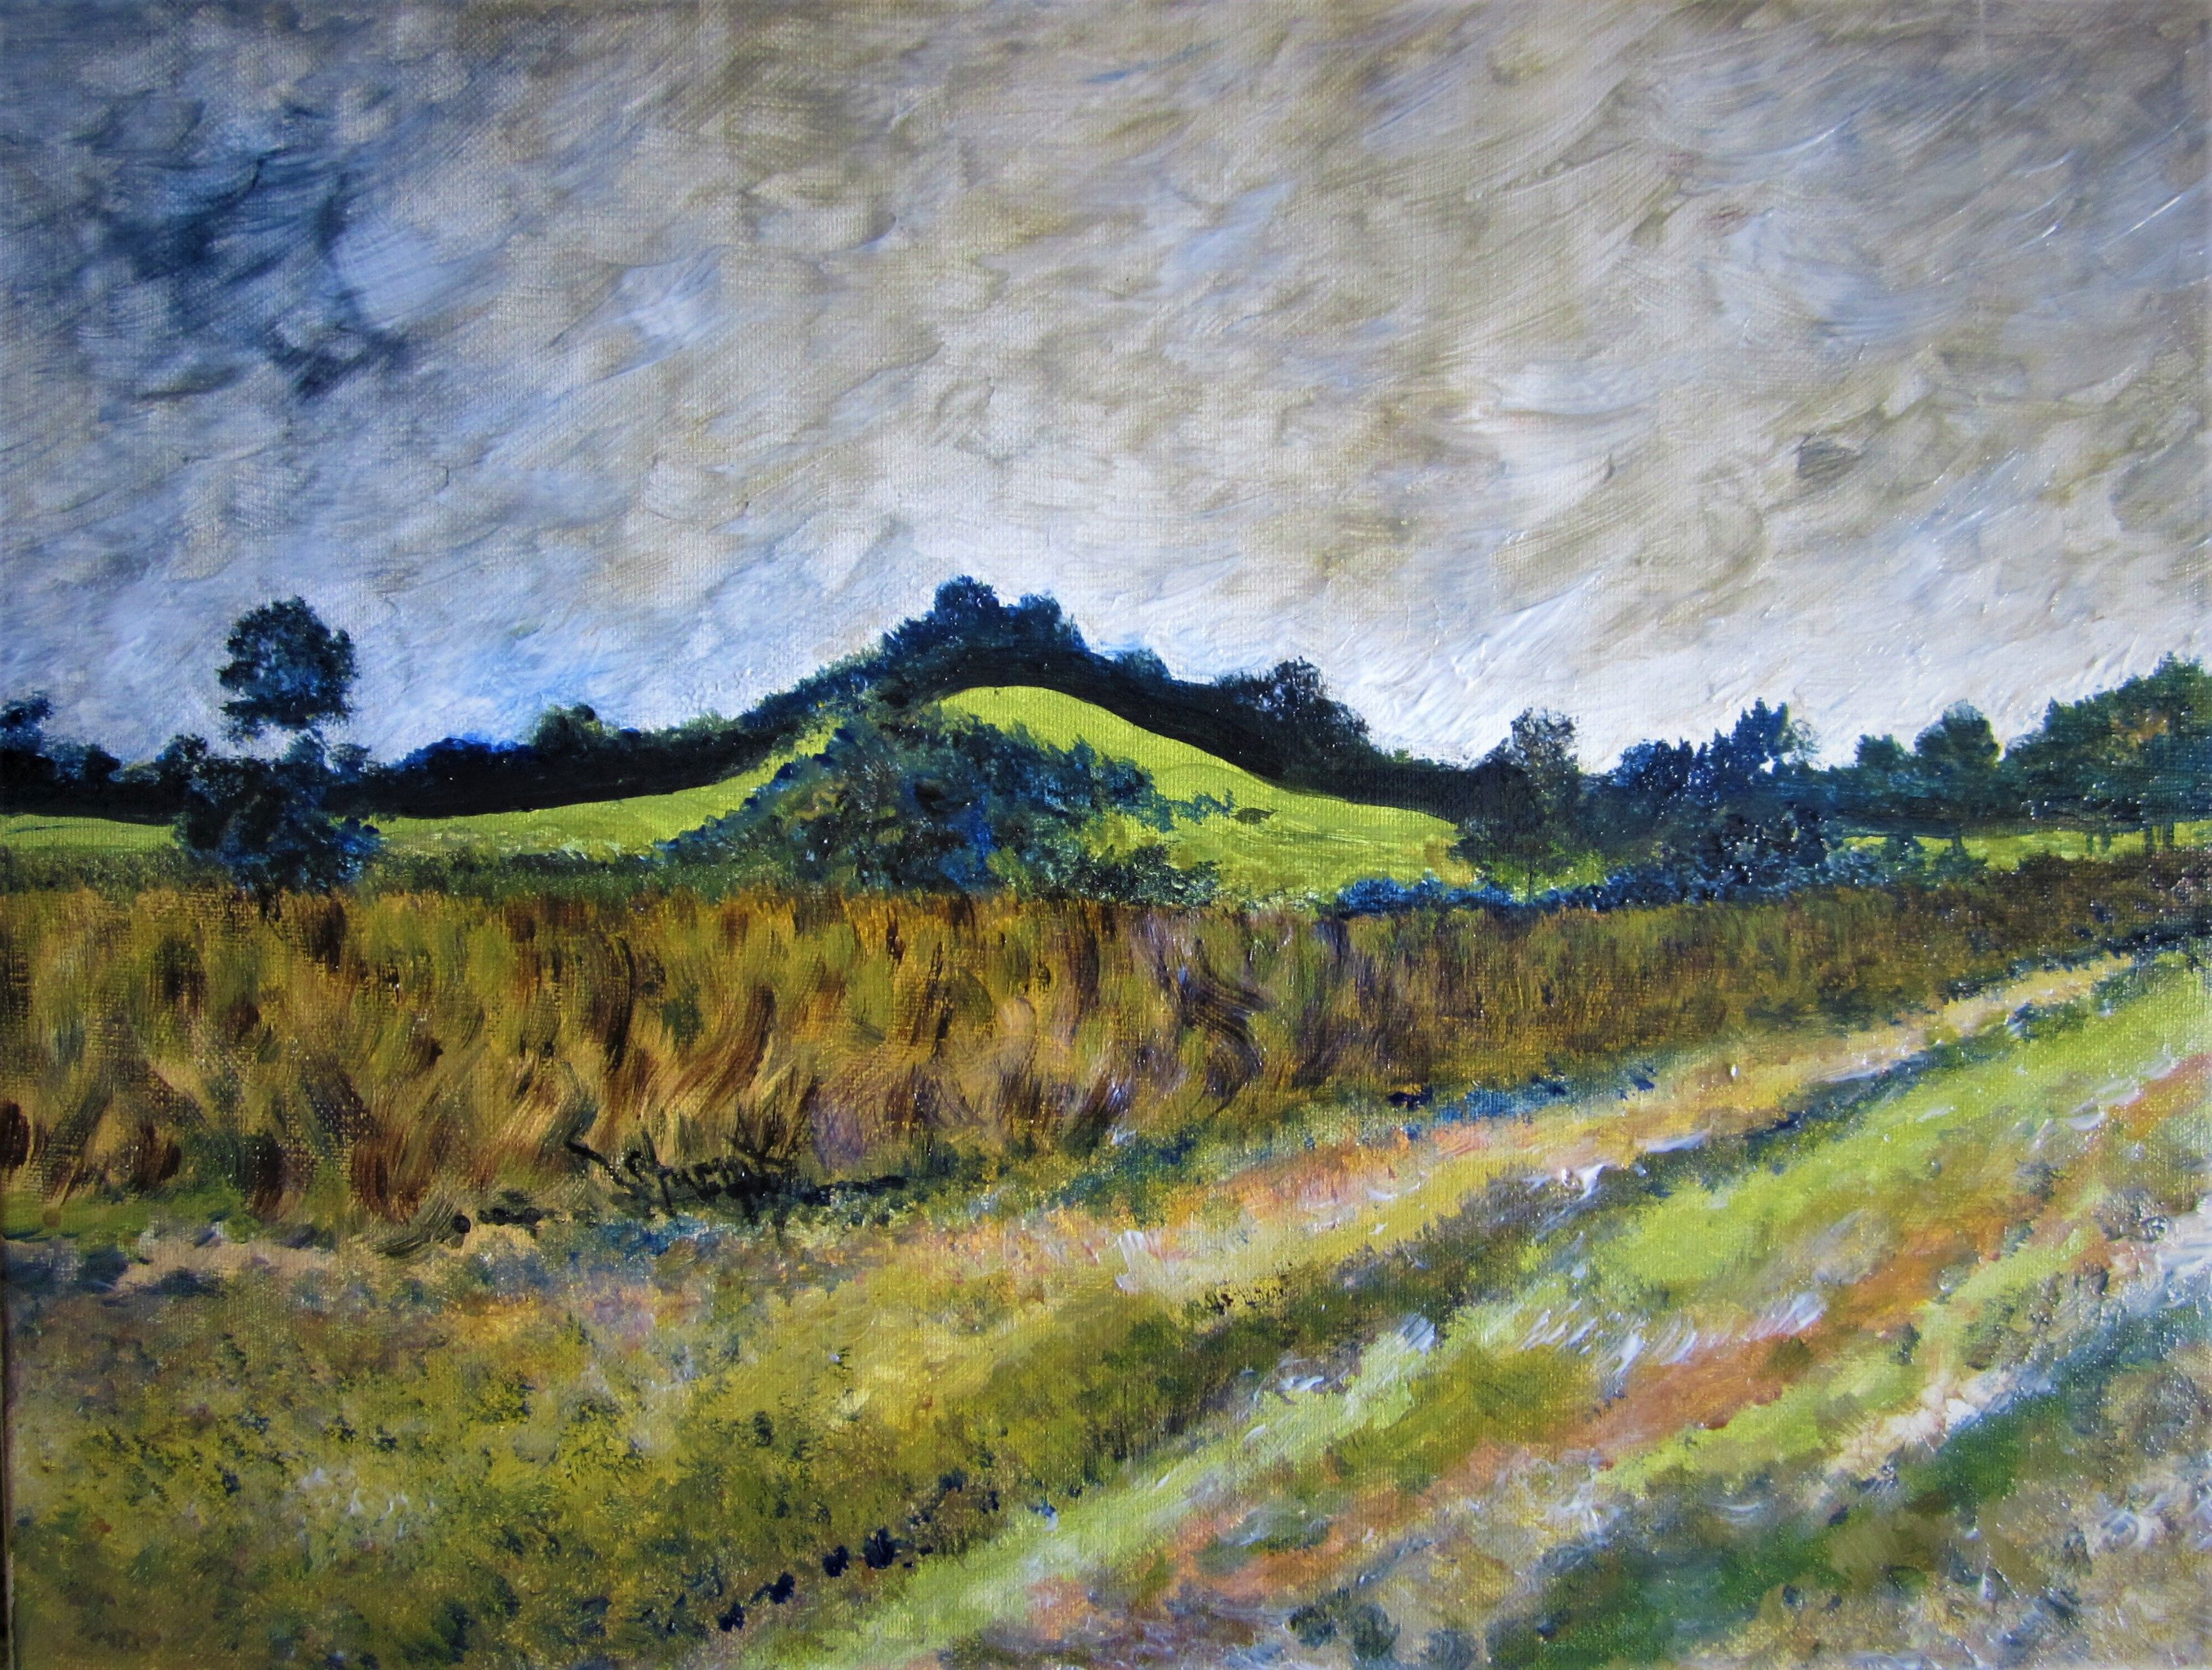 """Haney Hill, Acrylic on Canvas, 16"""" x 20"""", by Mary Patricia Stumpf"""